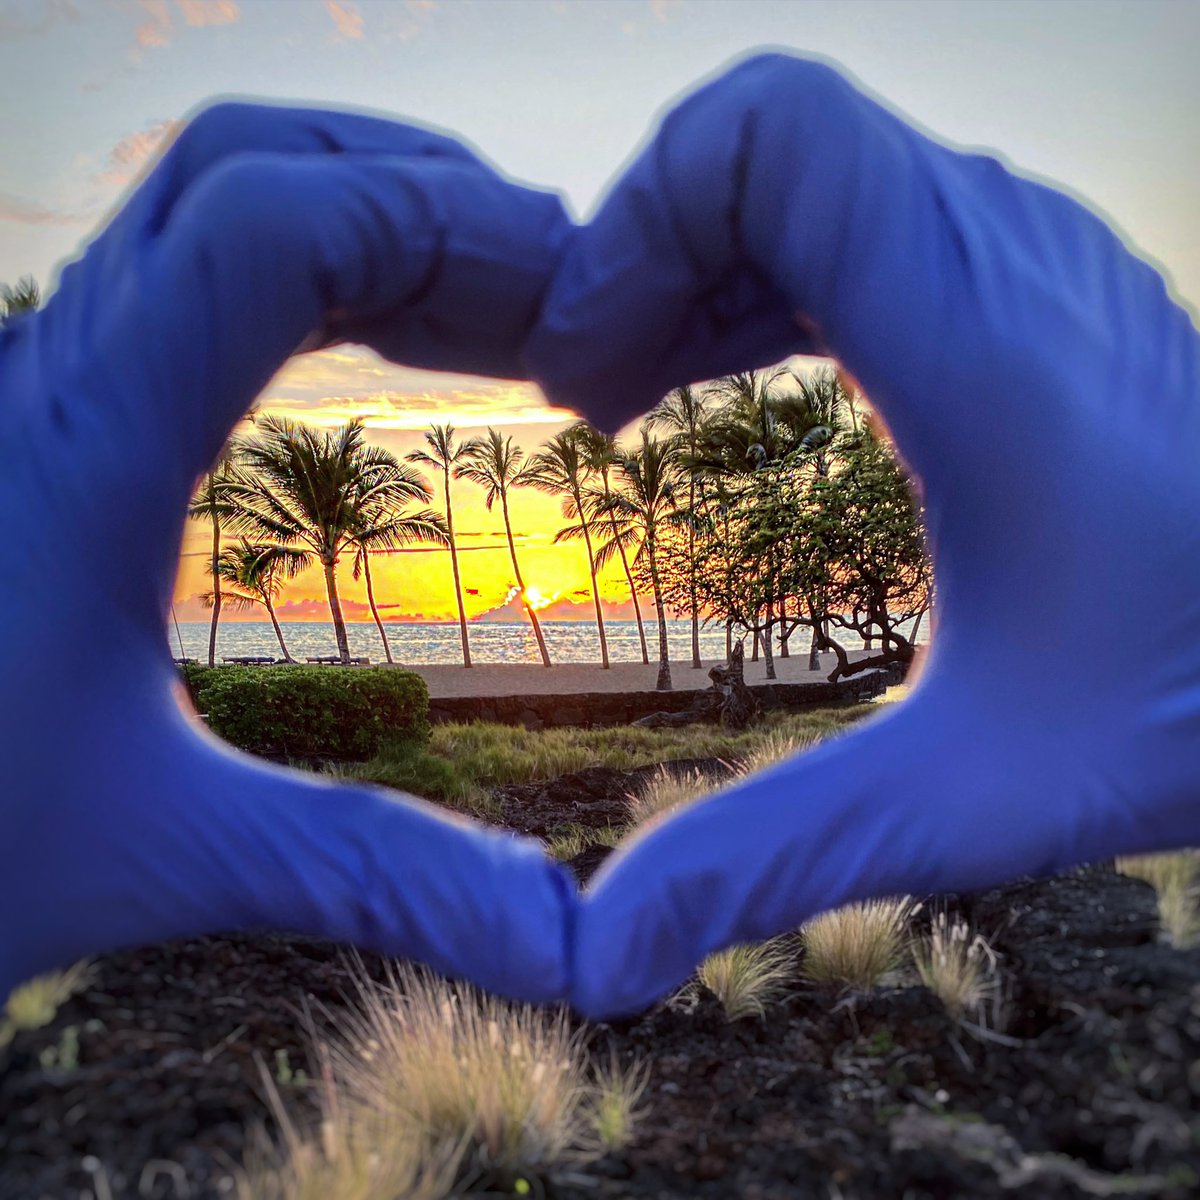 Things change, life's beauty doesn't  #sunsethearthands #outdoors #selfexile #desertedisland #oceanview #goodvibes @tacobell #hawaii #staysafe #hearthands #sharingsmilespic.twitter.com/MP5KfMzAi6 – at ʻAnaehoʻomalu Bay